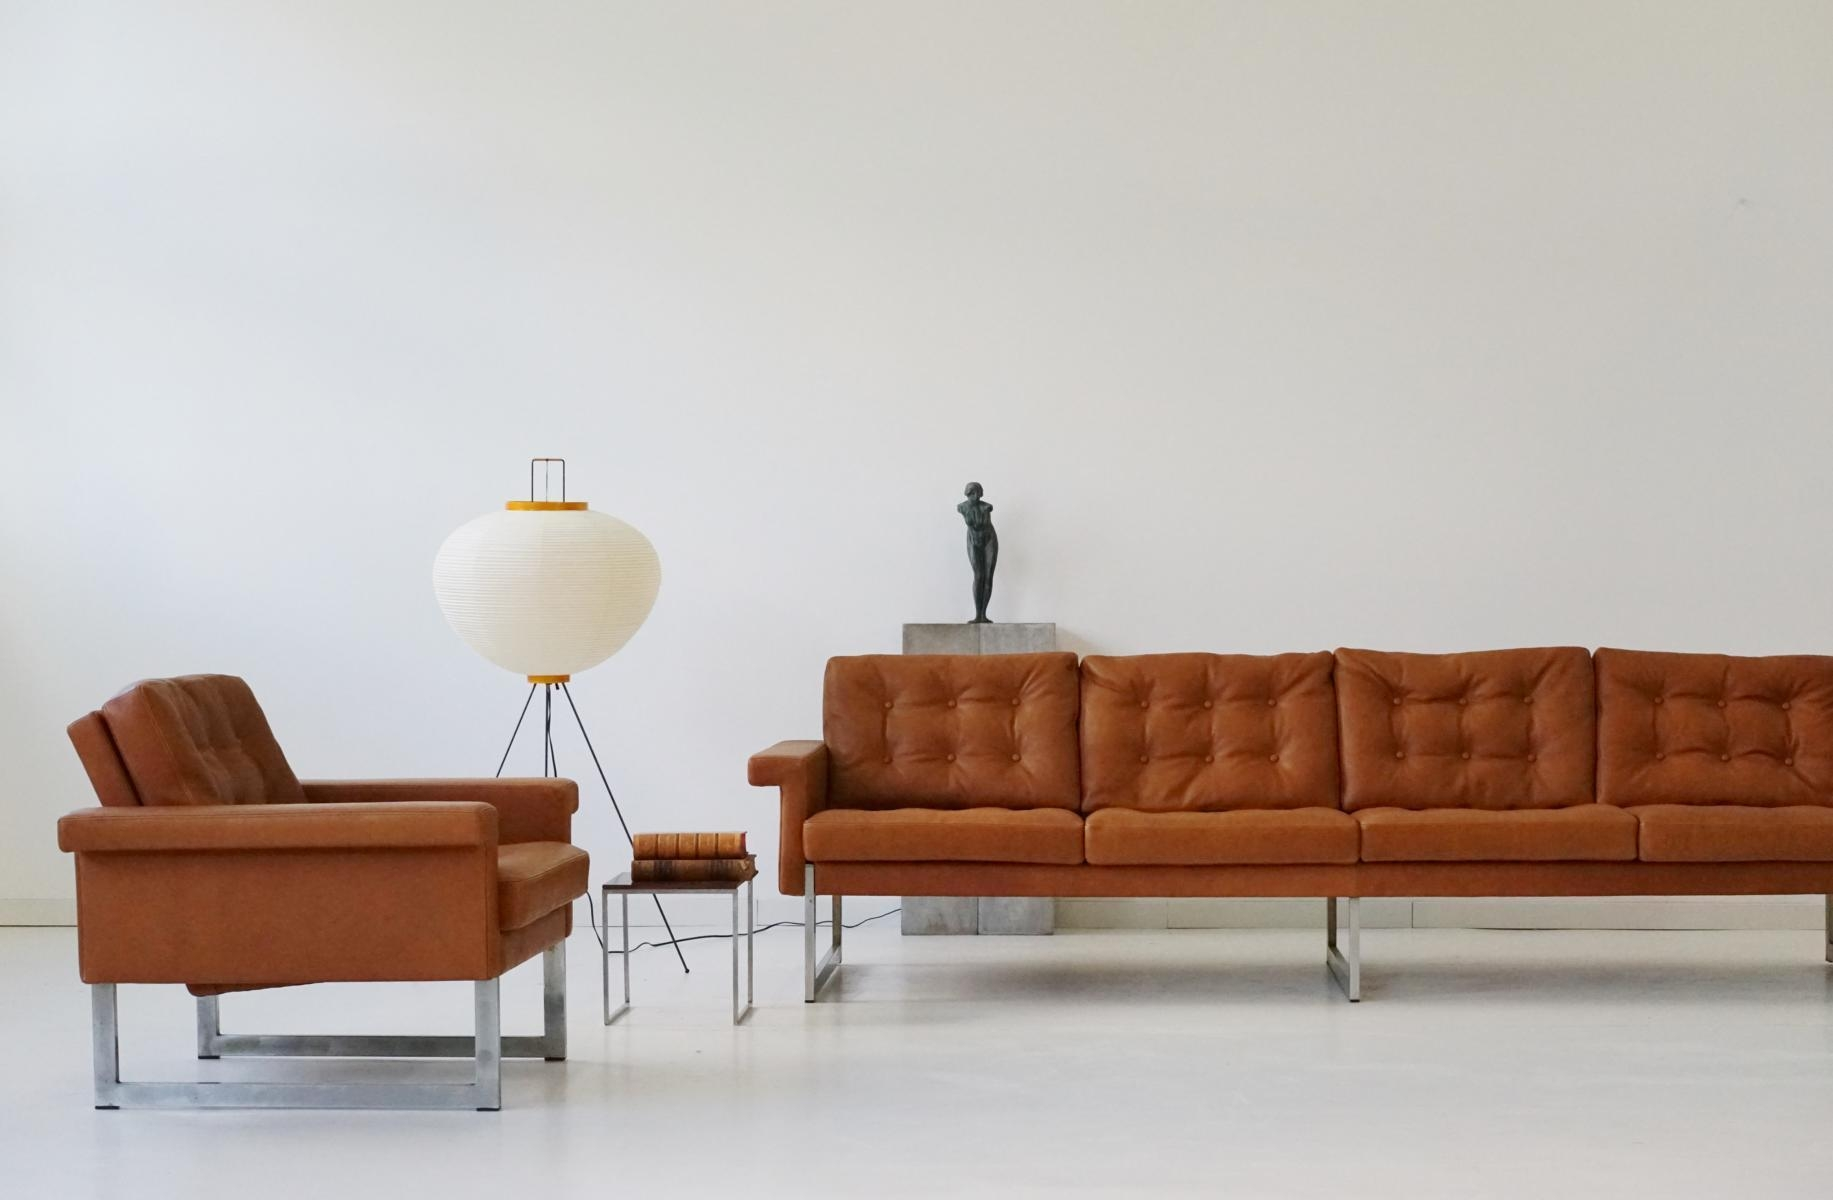 Four Seater Sofa & Lounge Chairs From Kill International, 1967 For Within Four Seat Sofas (View 14 of 20)